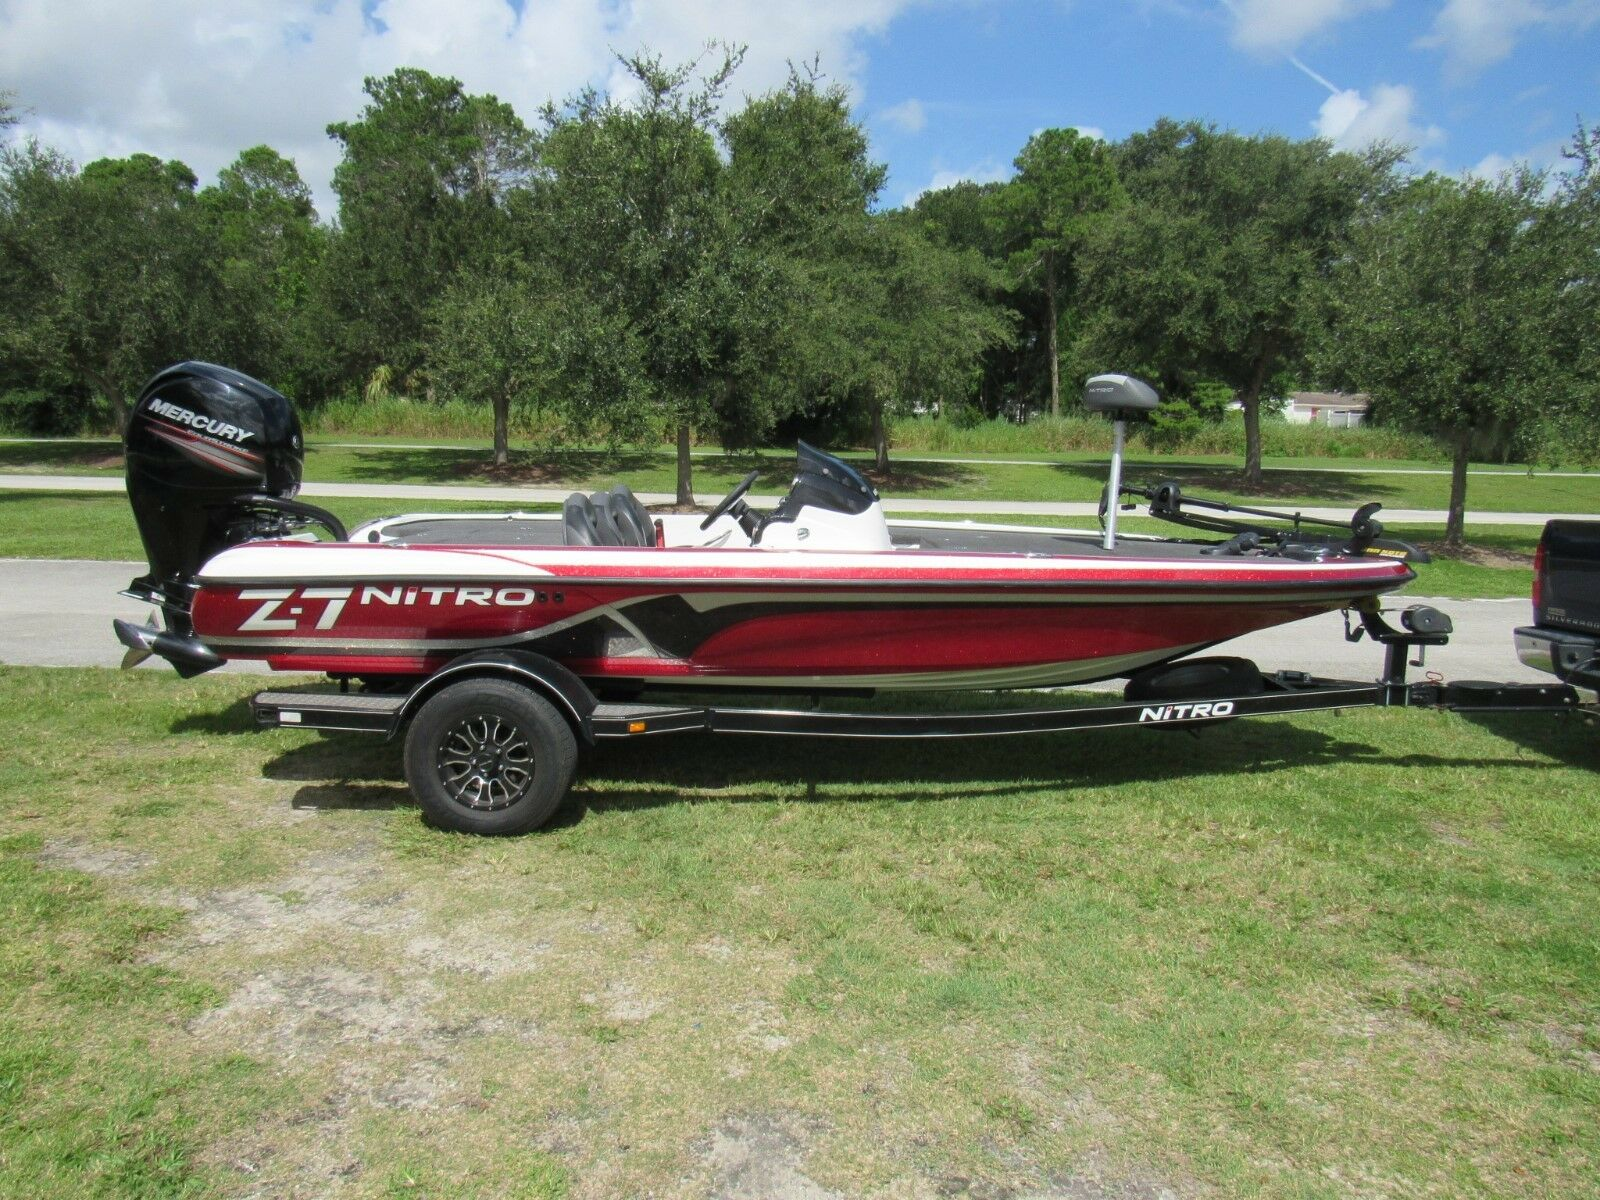 2015 Nitro Z7 Very Clean boat Low hours!